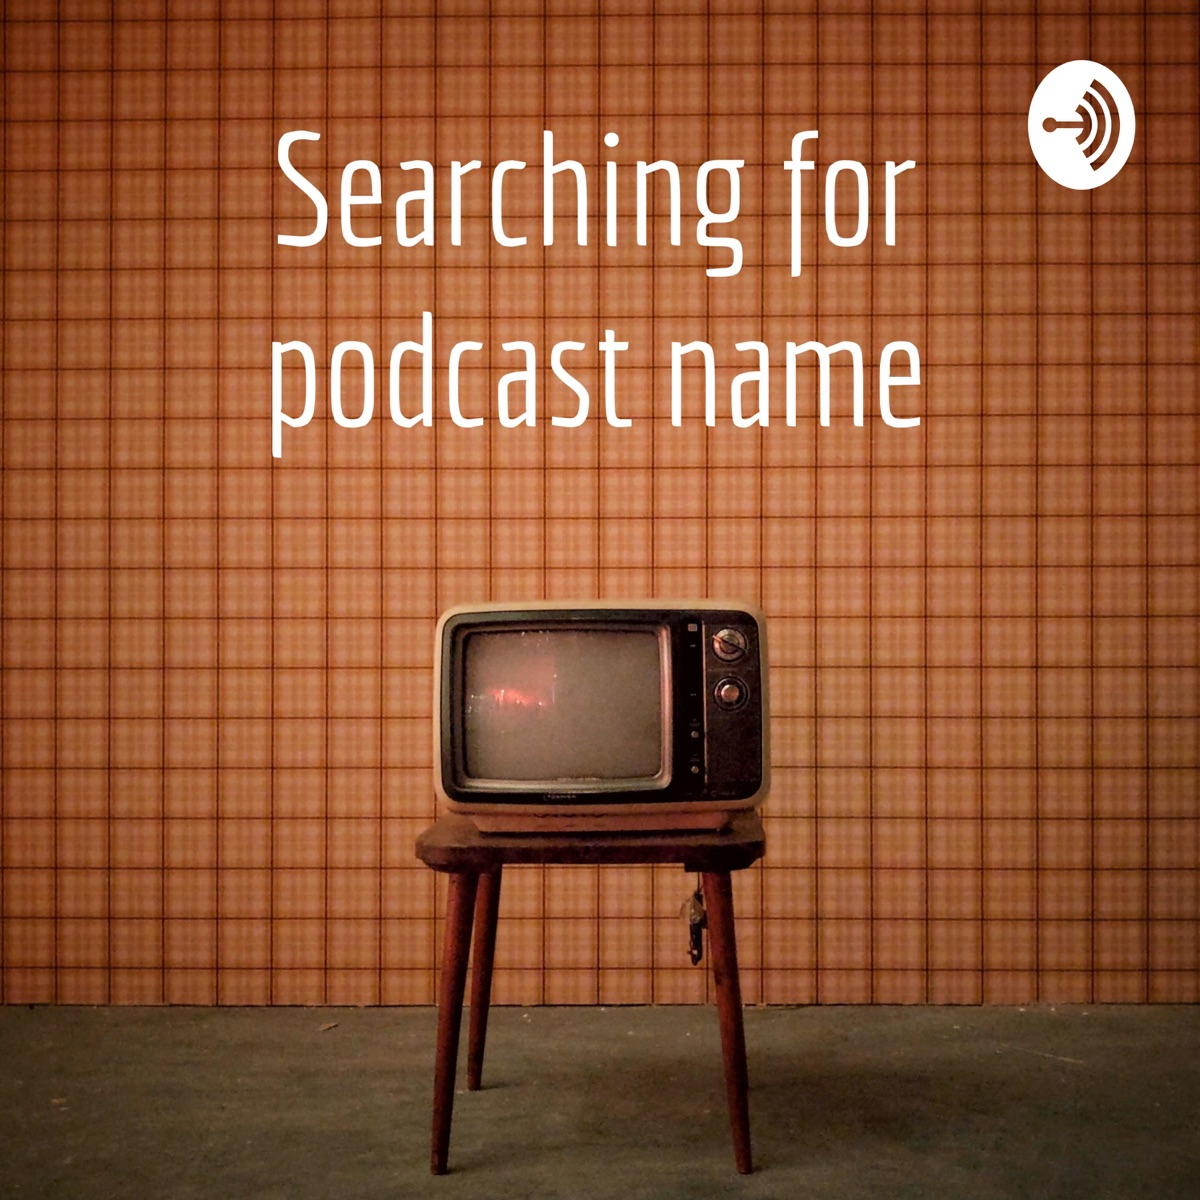 Searching for podcast name